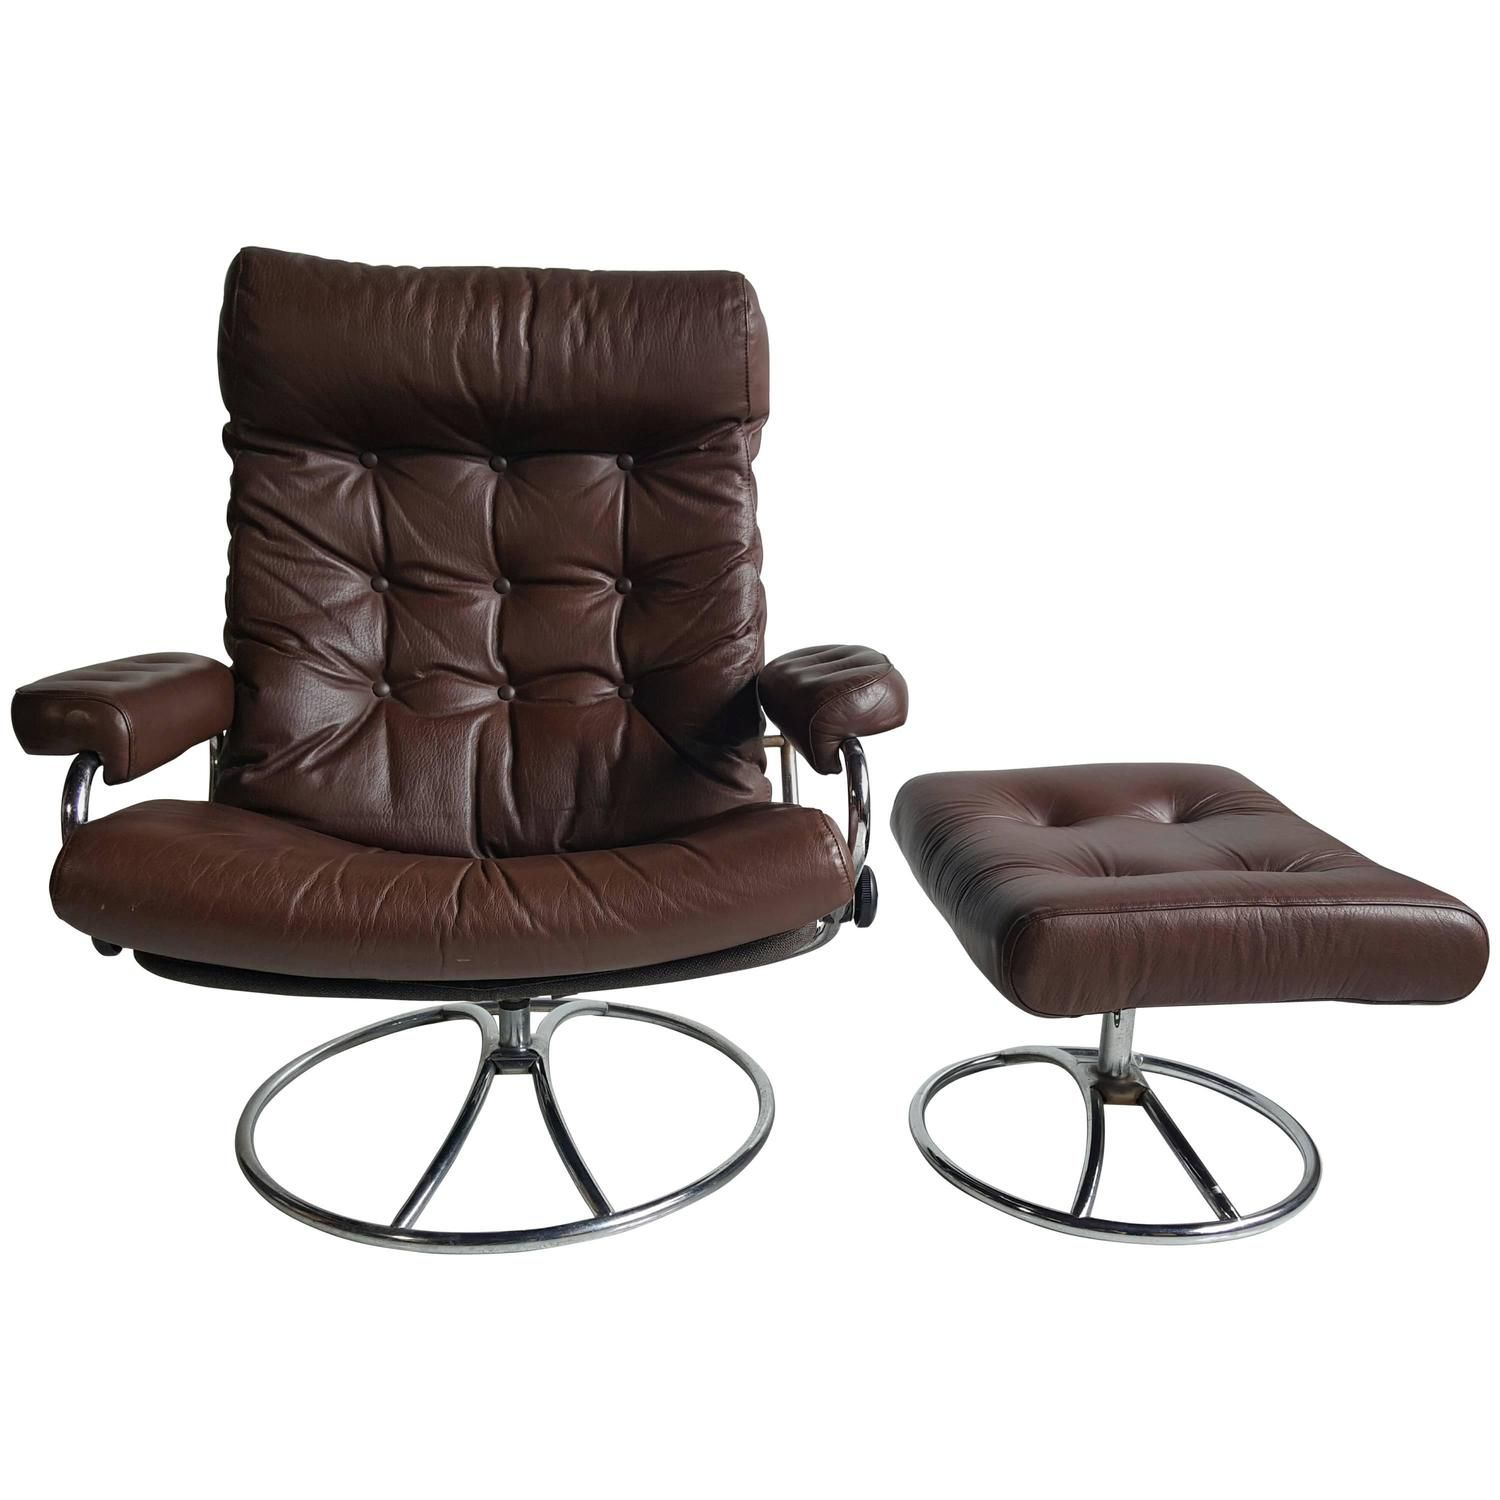 Brown Leather Ekornes Stressless Lounge With Ottoman 1960 Ekornes Ekornes Stressless Chair And Ottoman